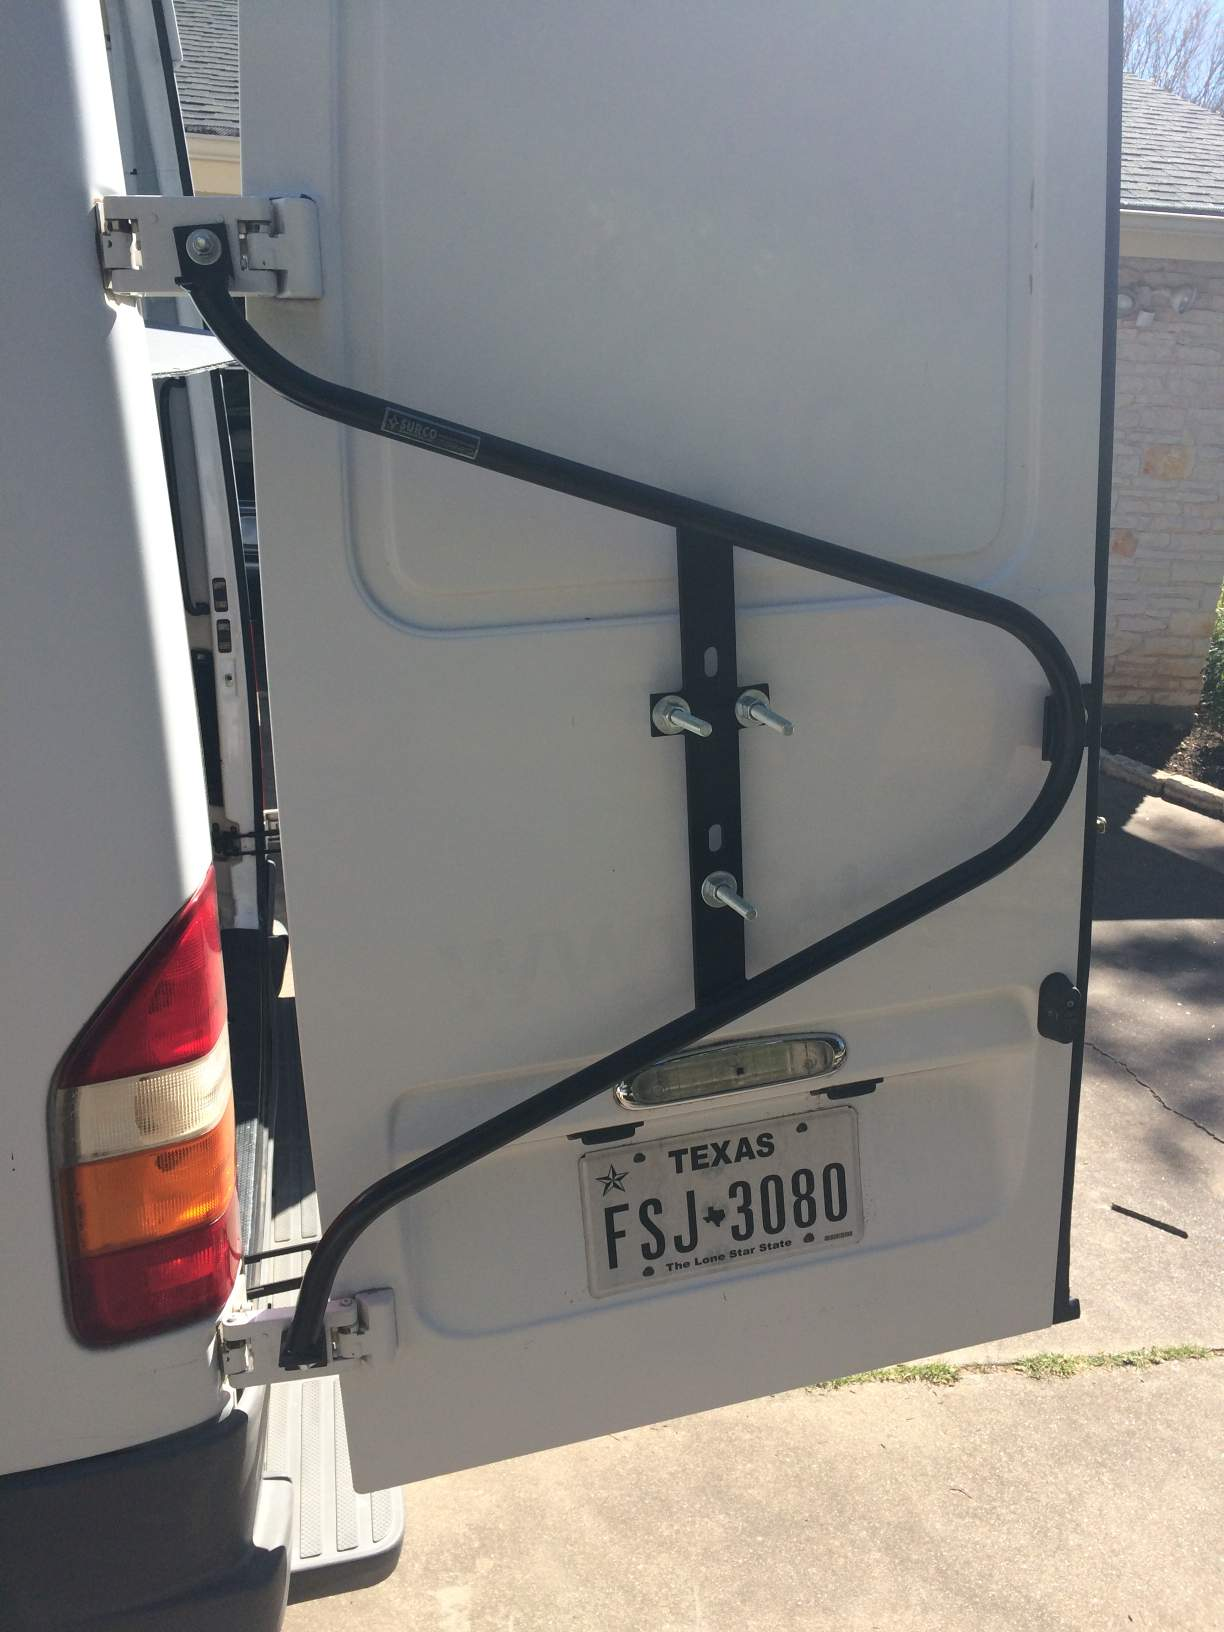 Mounting A Bike Stand Clamp To Rear Door Vandwellers